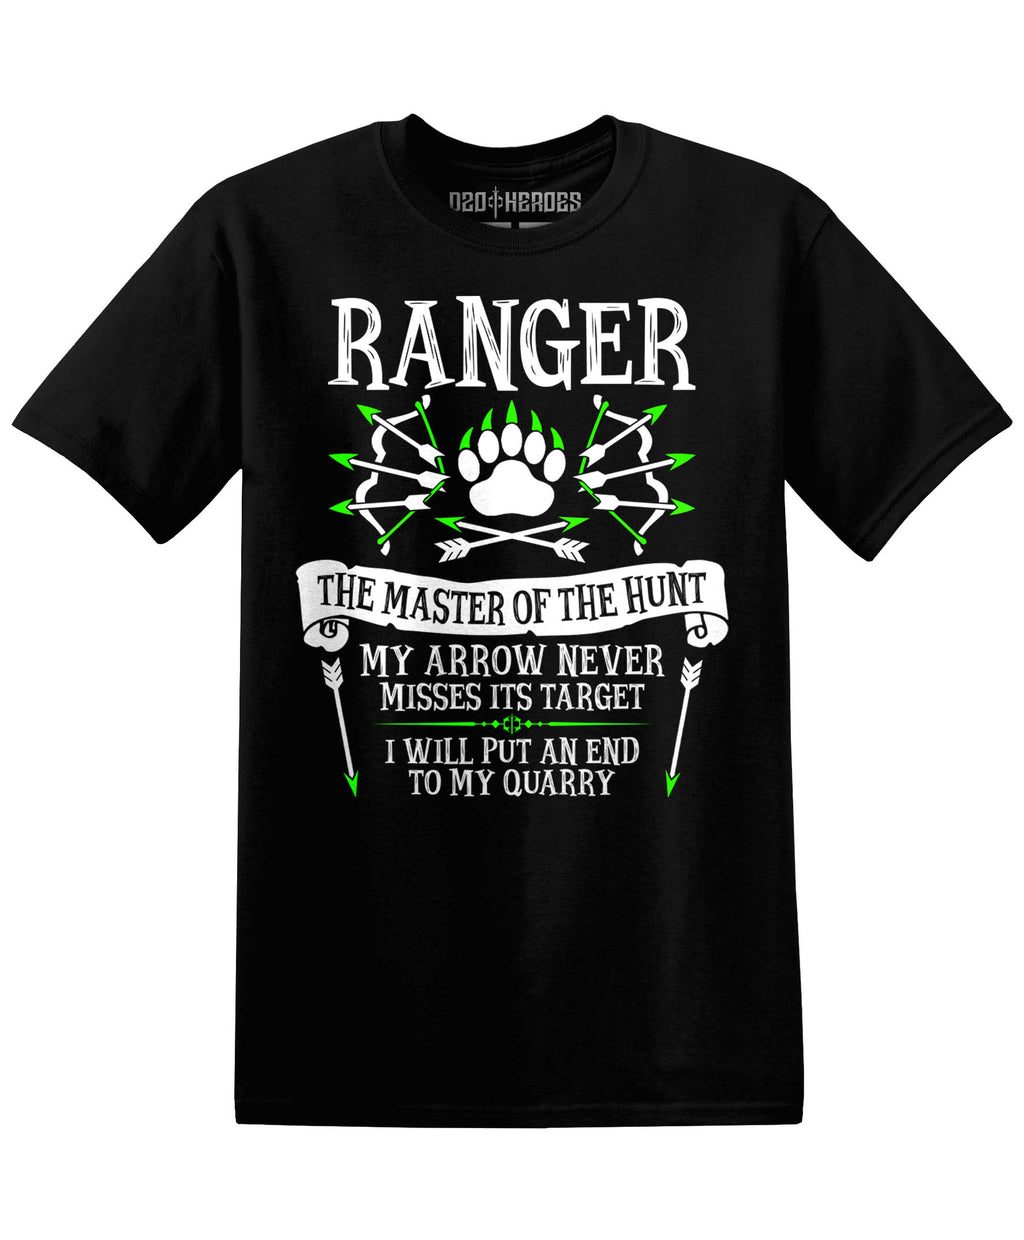 Ranger : The Master of the Hunt - T-Shirt - D20 Heroes / Dungeons and Dragons and Fantasy Clothing and Merchandise